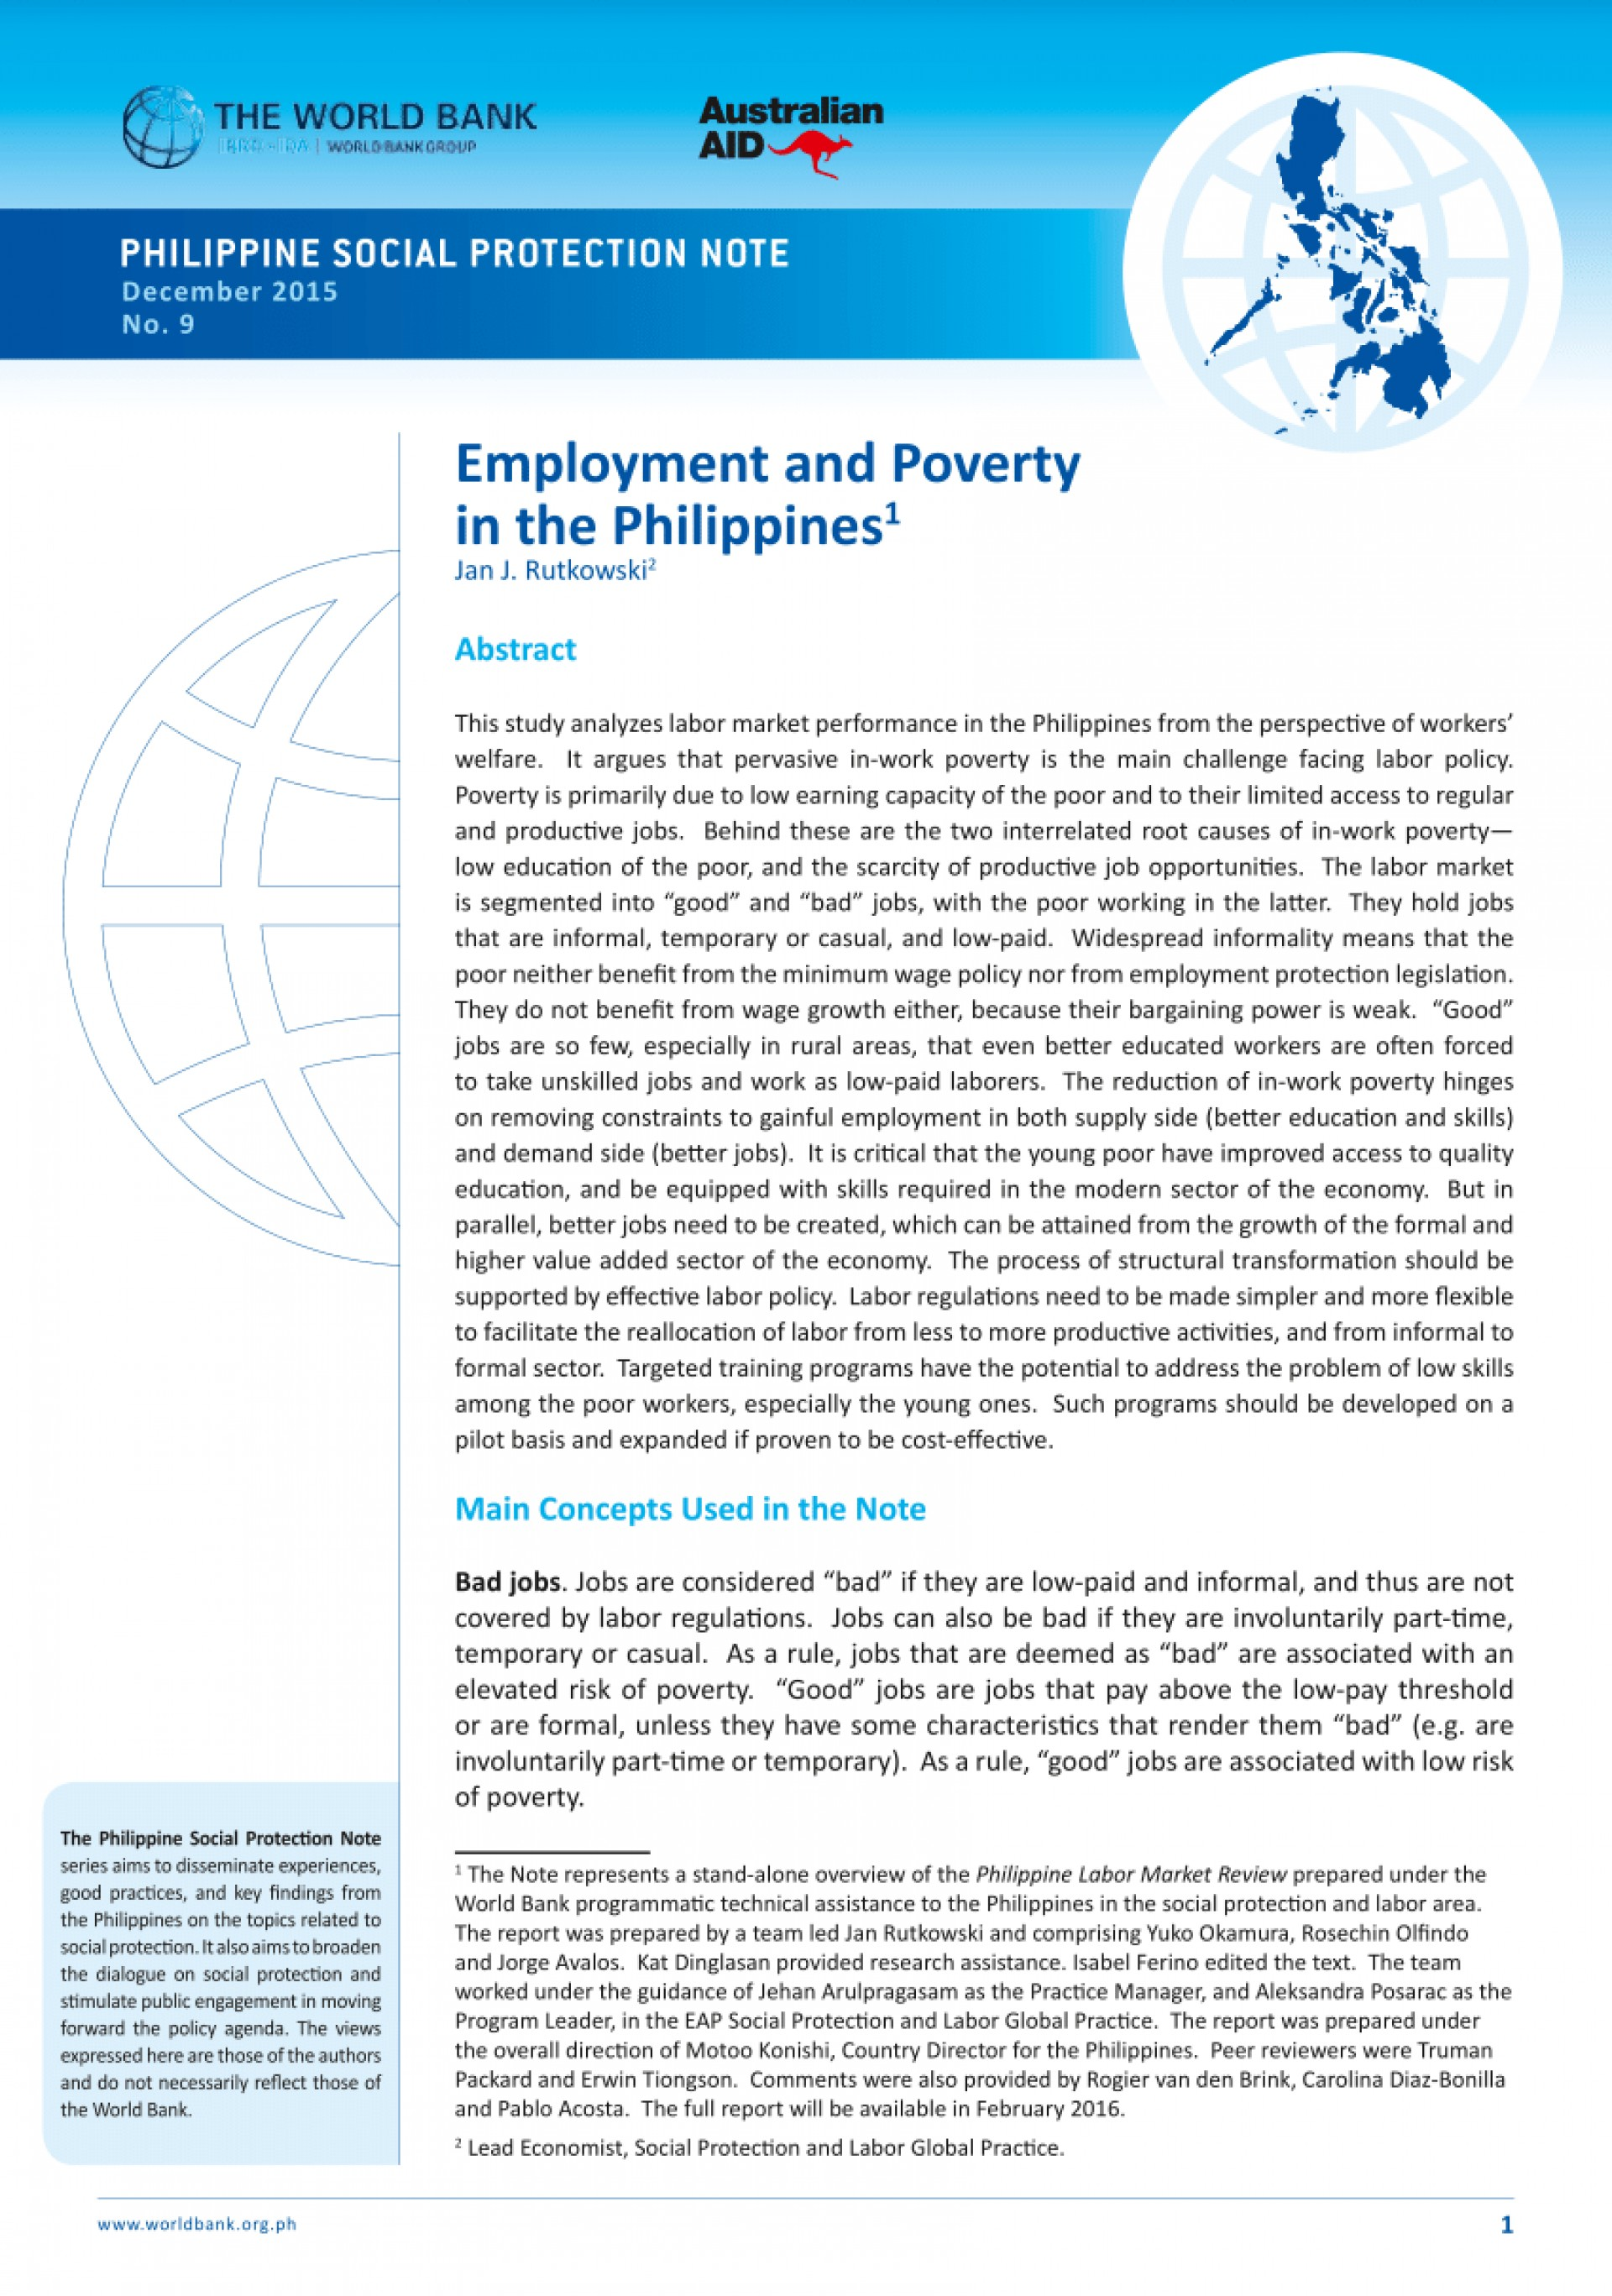 007 Poverty In The Philippines Research Paper Abstract Remarkable 1920